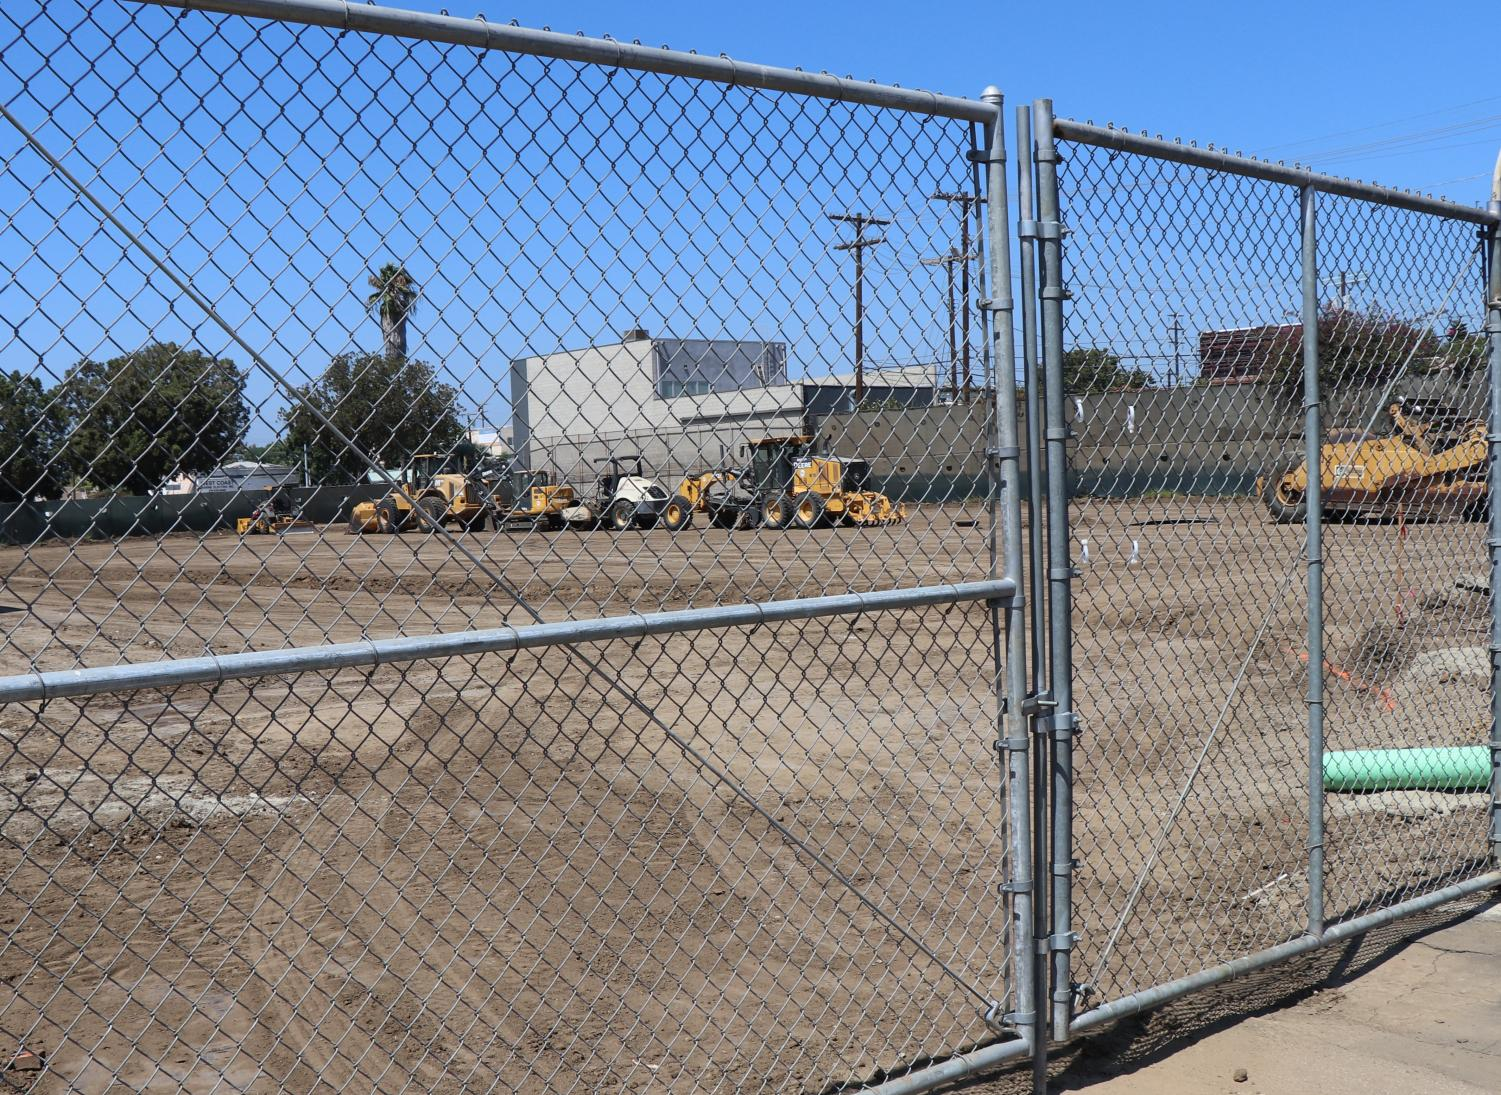 The former field will soon be converted into a brand new teacher parking lot.